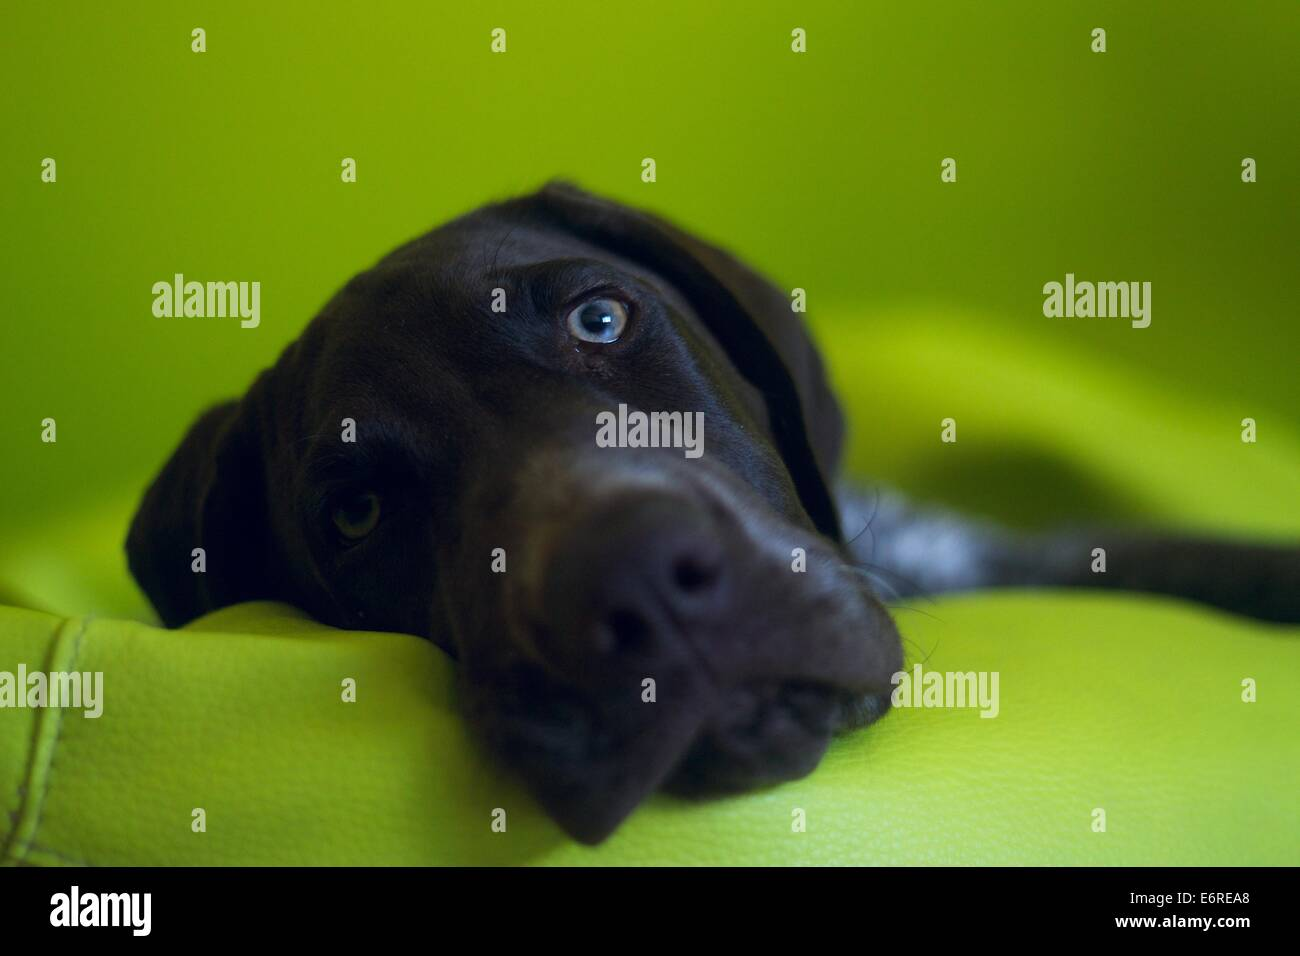 German Shorthaired Pointer, 5 months old, laying down on a green bean bag and looking directly into the camera - Stock Image